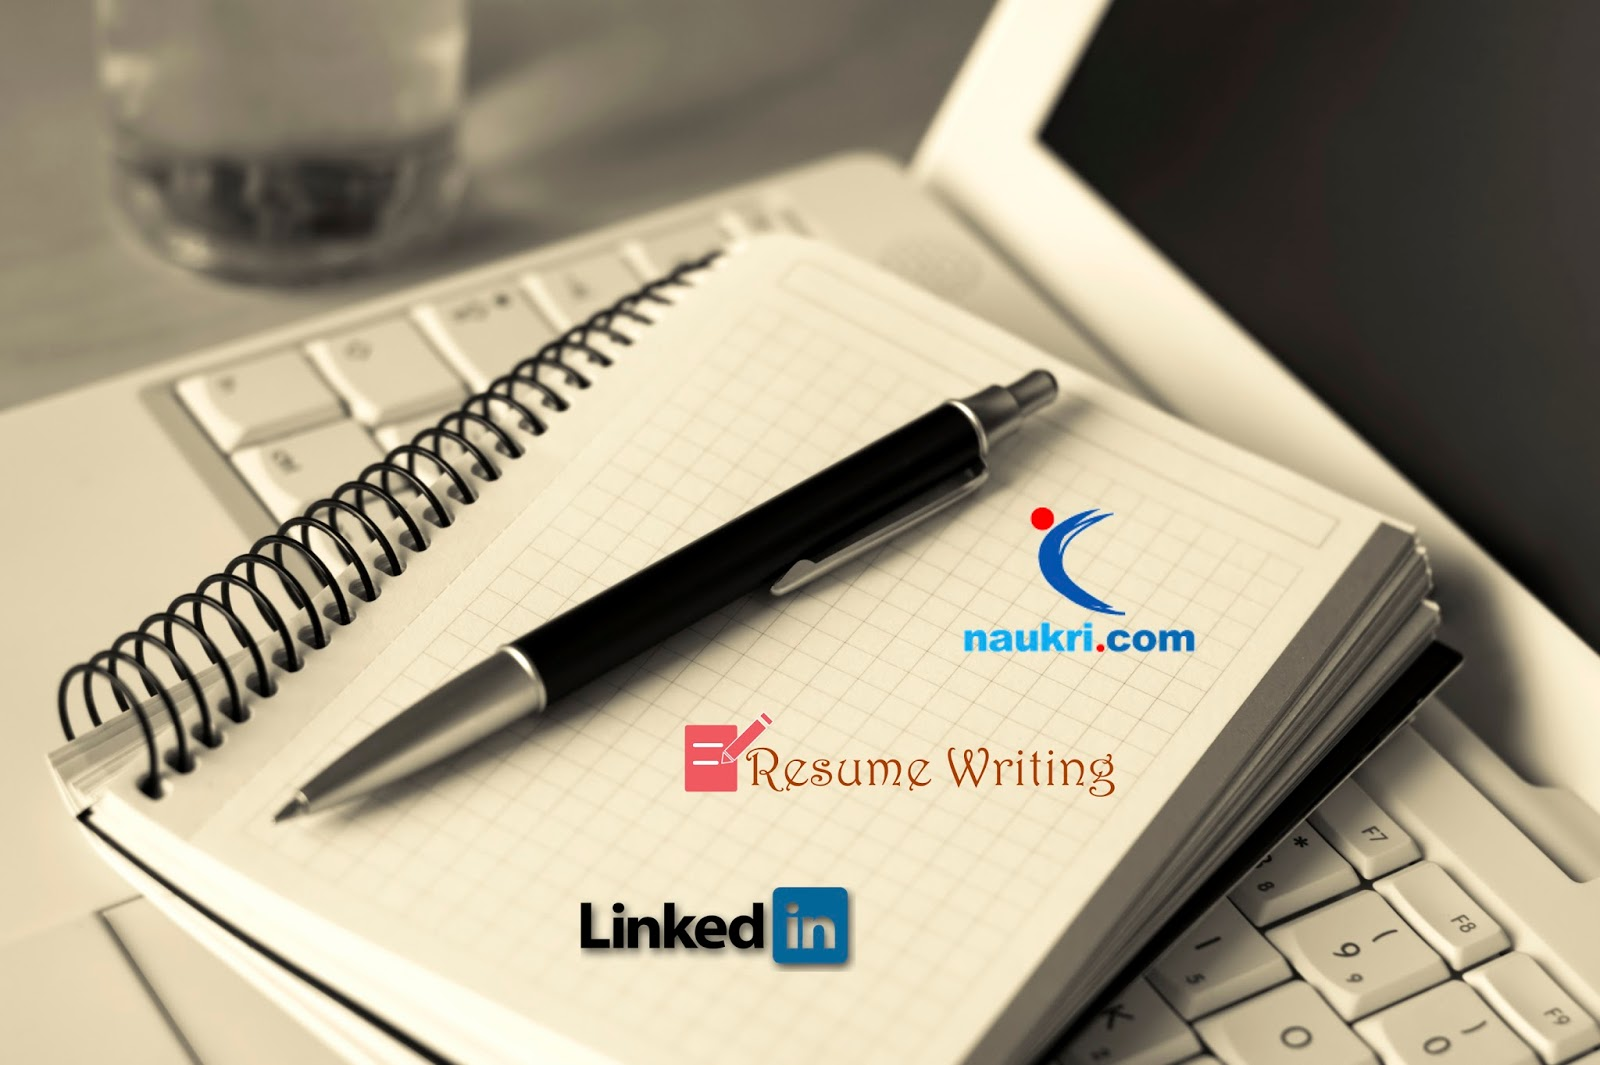 resume Resume From Linkedin want your resume linkedin naukri com profile to outshine outshine